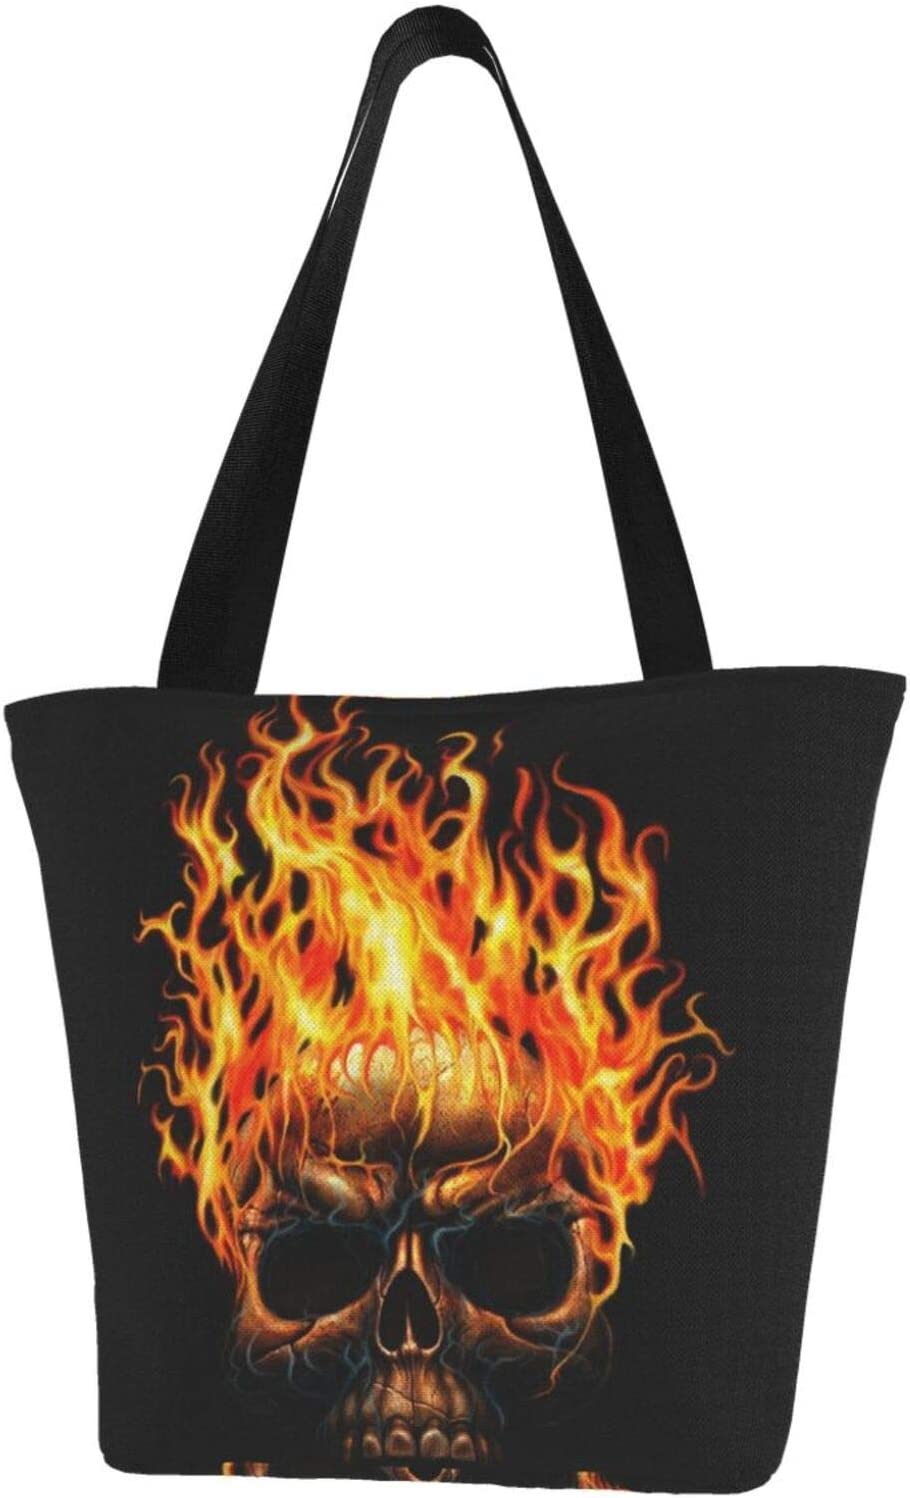 AKLID Skull Fire Head Super beauty product restock quality top! Extra Large Tote 4 years warranty Canvas Resistant Water Ba